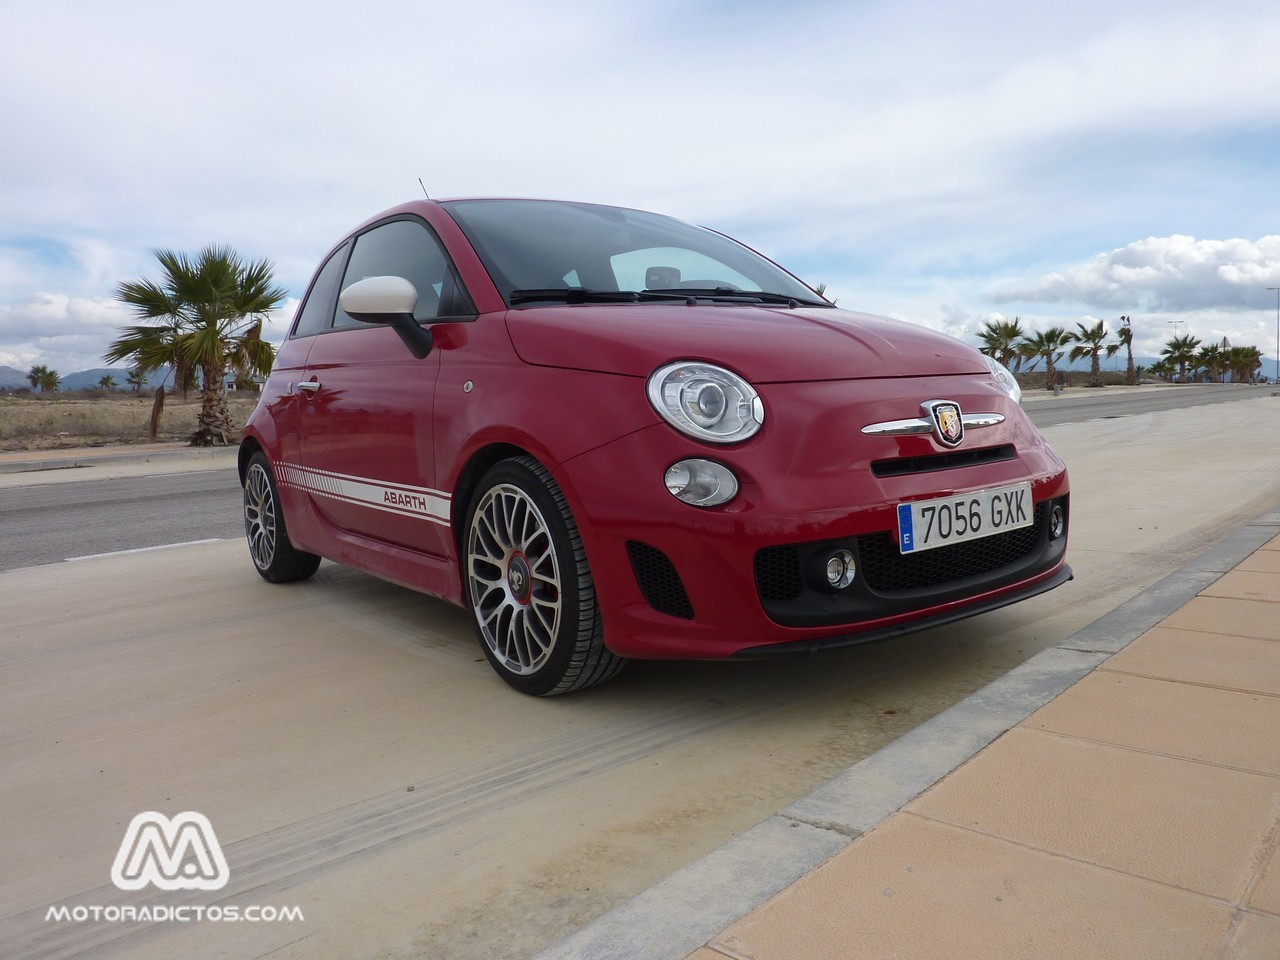 Prueba Abarth 500 1.4 T Jet 135 caballos (parte 2) 